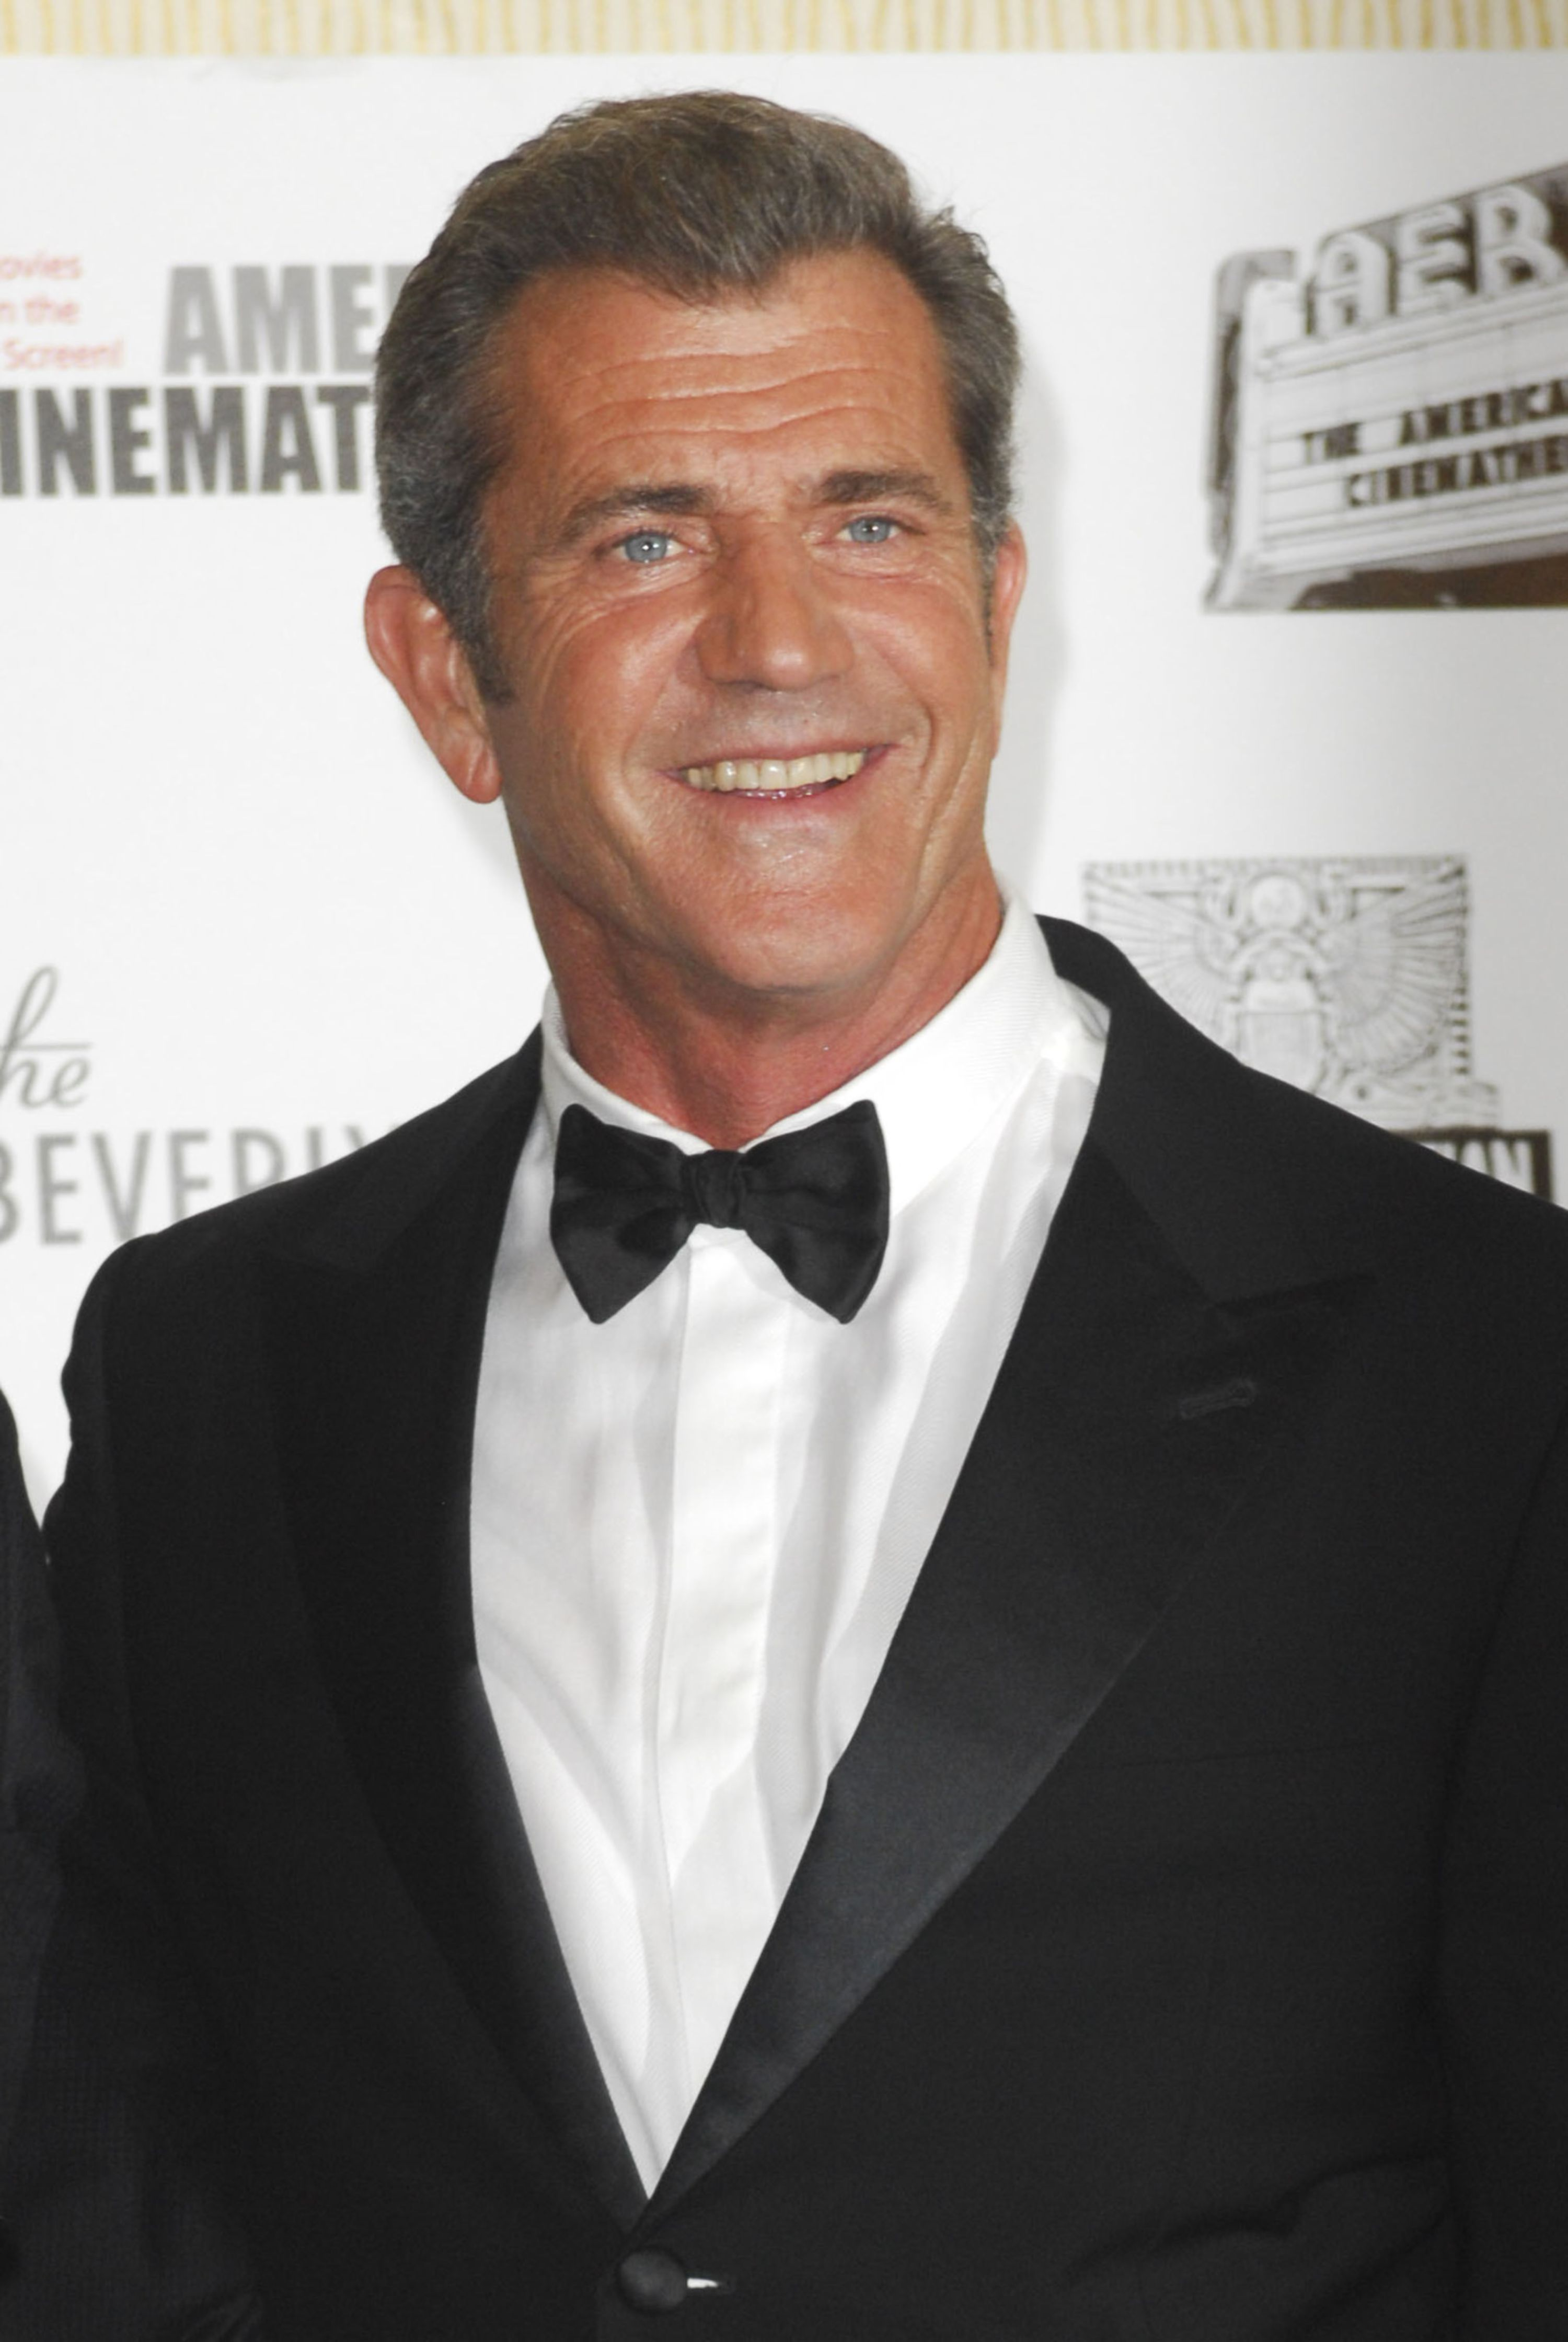 Judge says mel gibson can get drunk again yay new foto